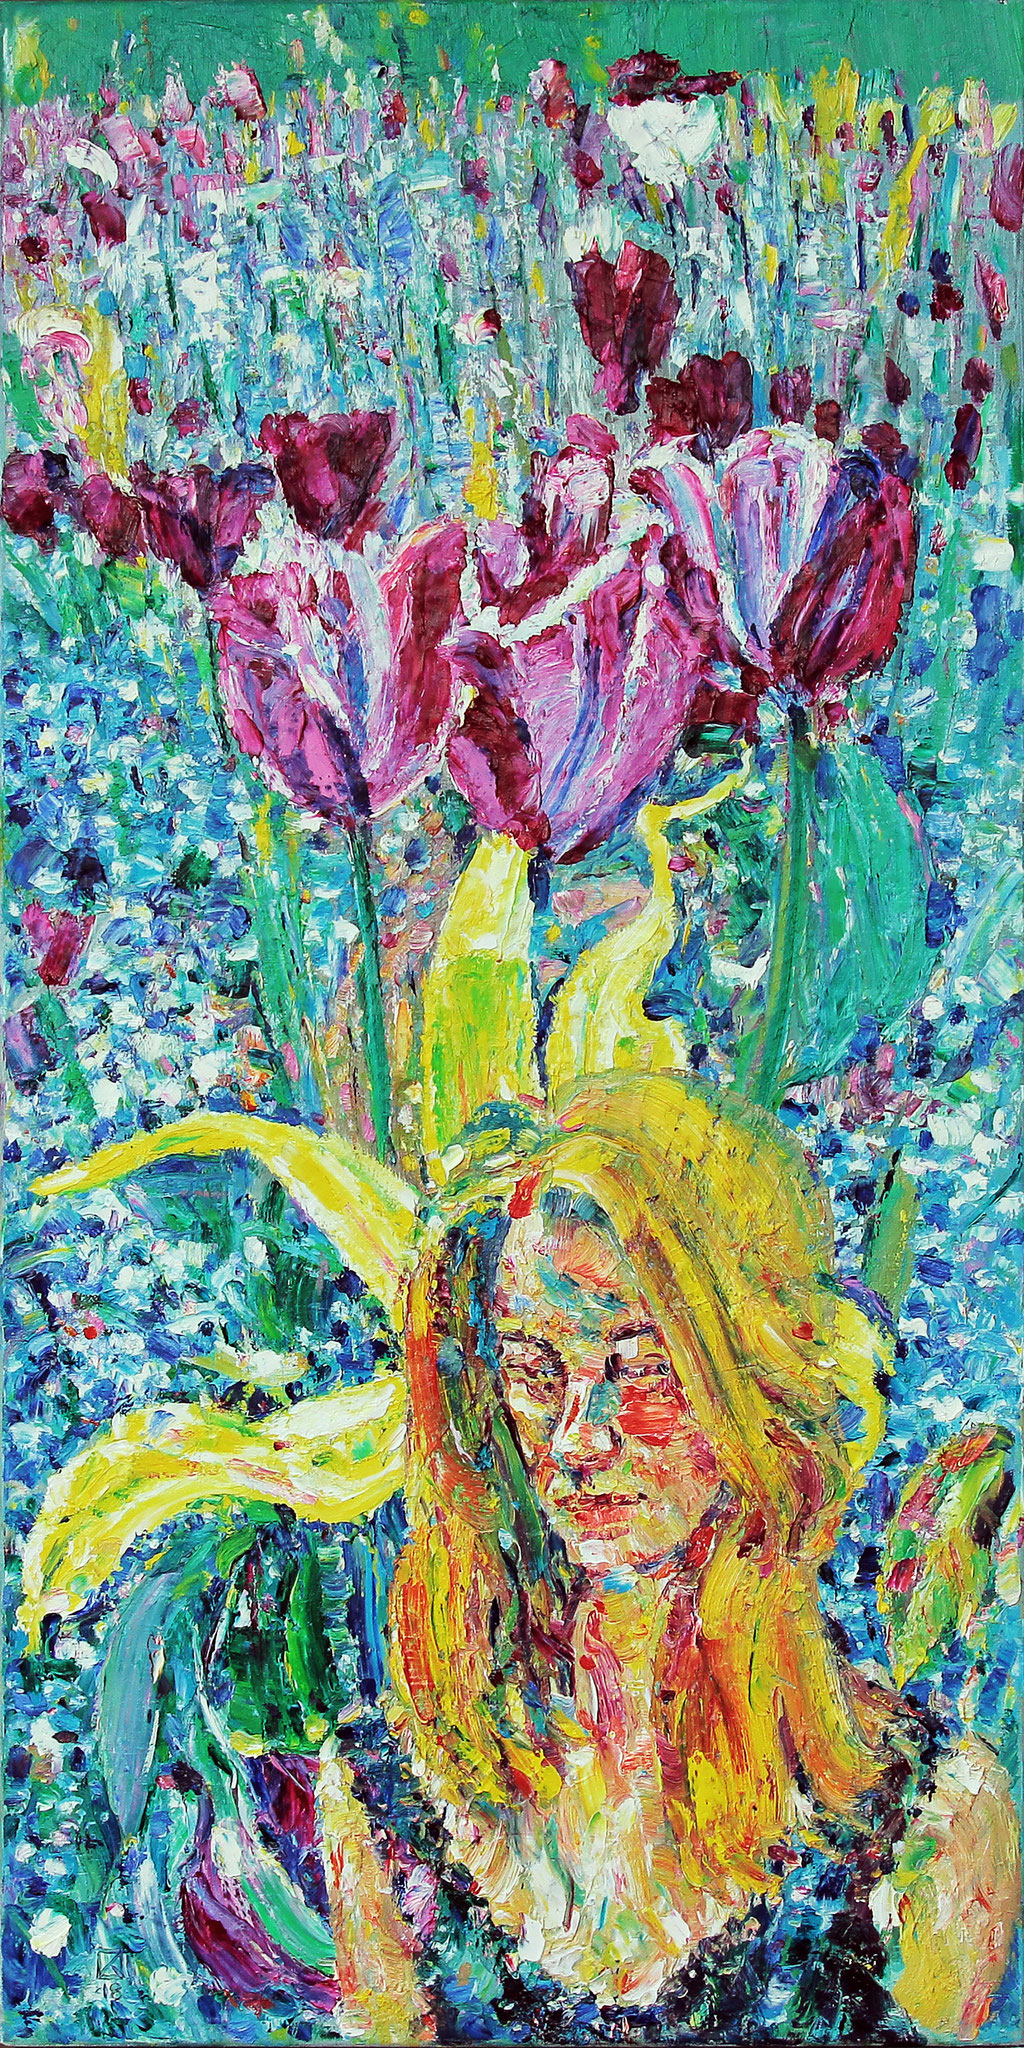 Marylou In a Wonderful Garden. 2018. Oil on canvas. 100 x 50